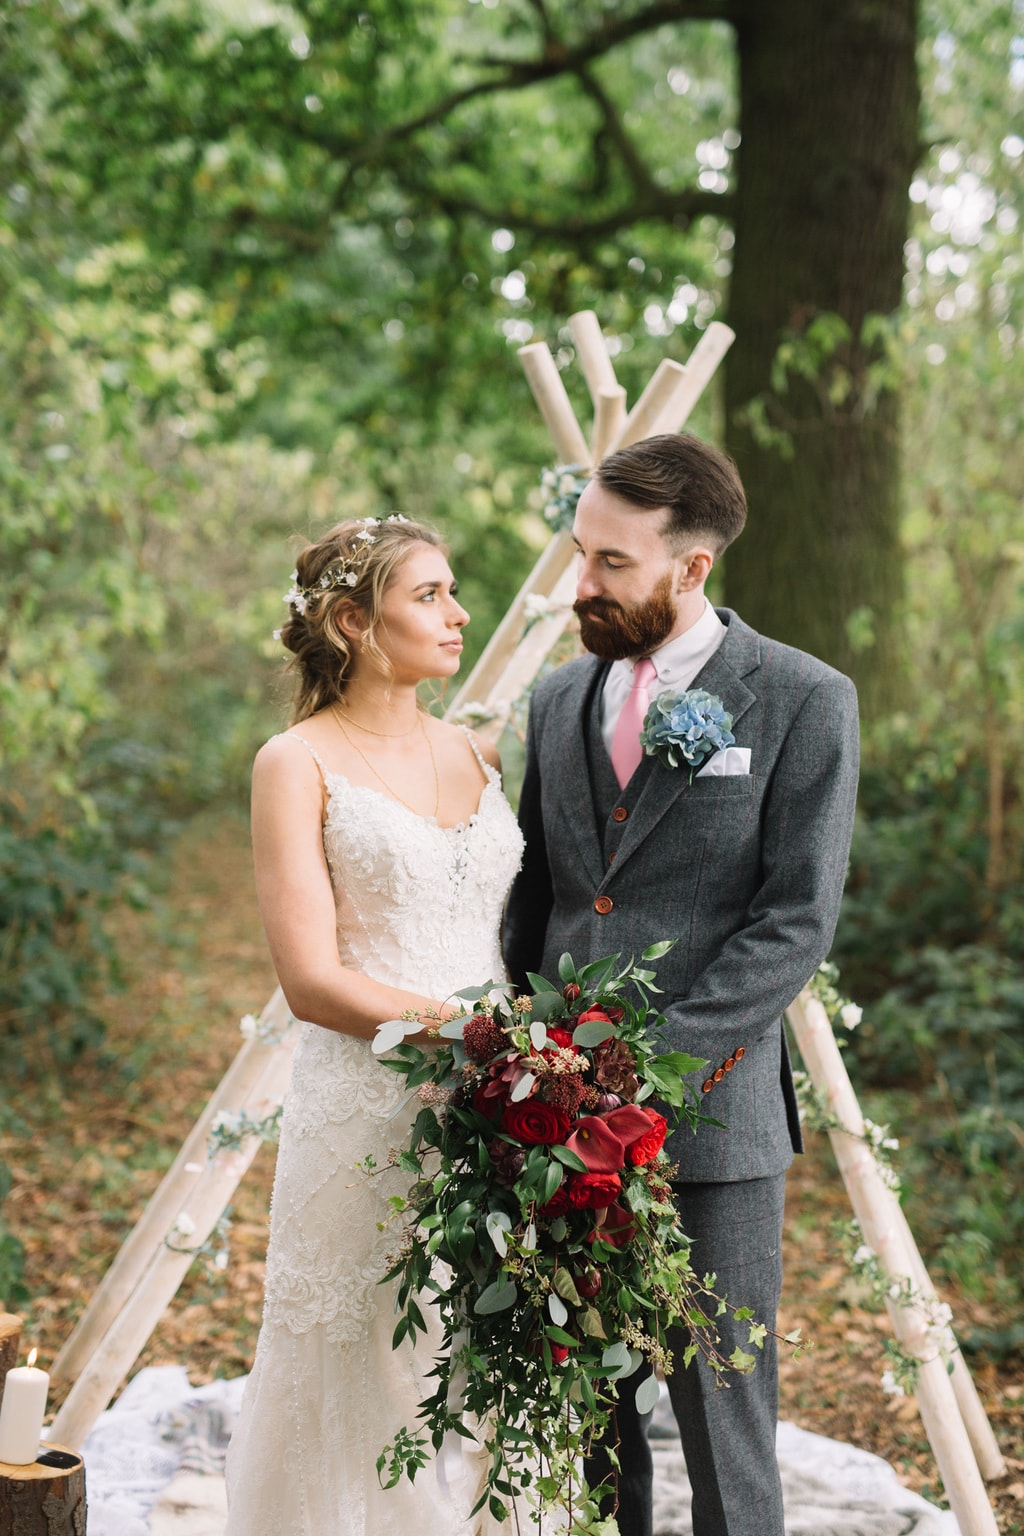 A Beautiful Whimsical Winter Wedding Shoot With Woodland Elements And Festive Colours